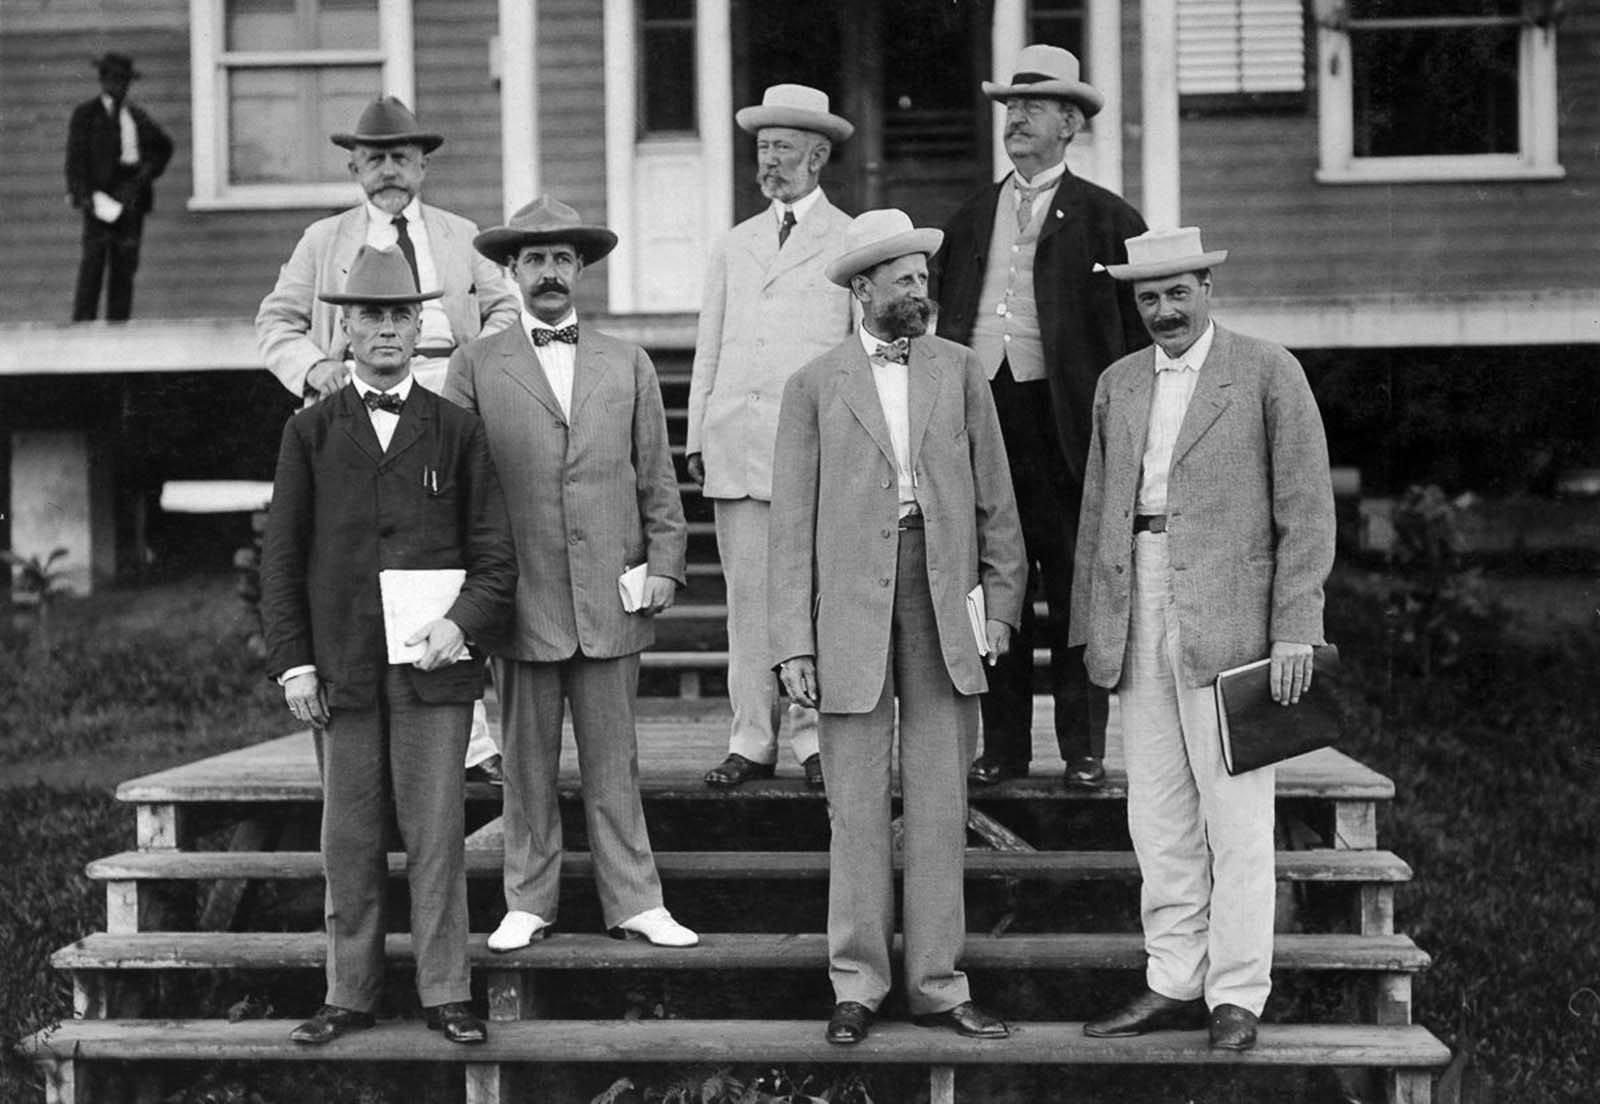 American engineers sent by President Roosevelt. 1908.